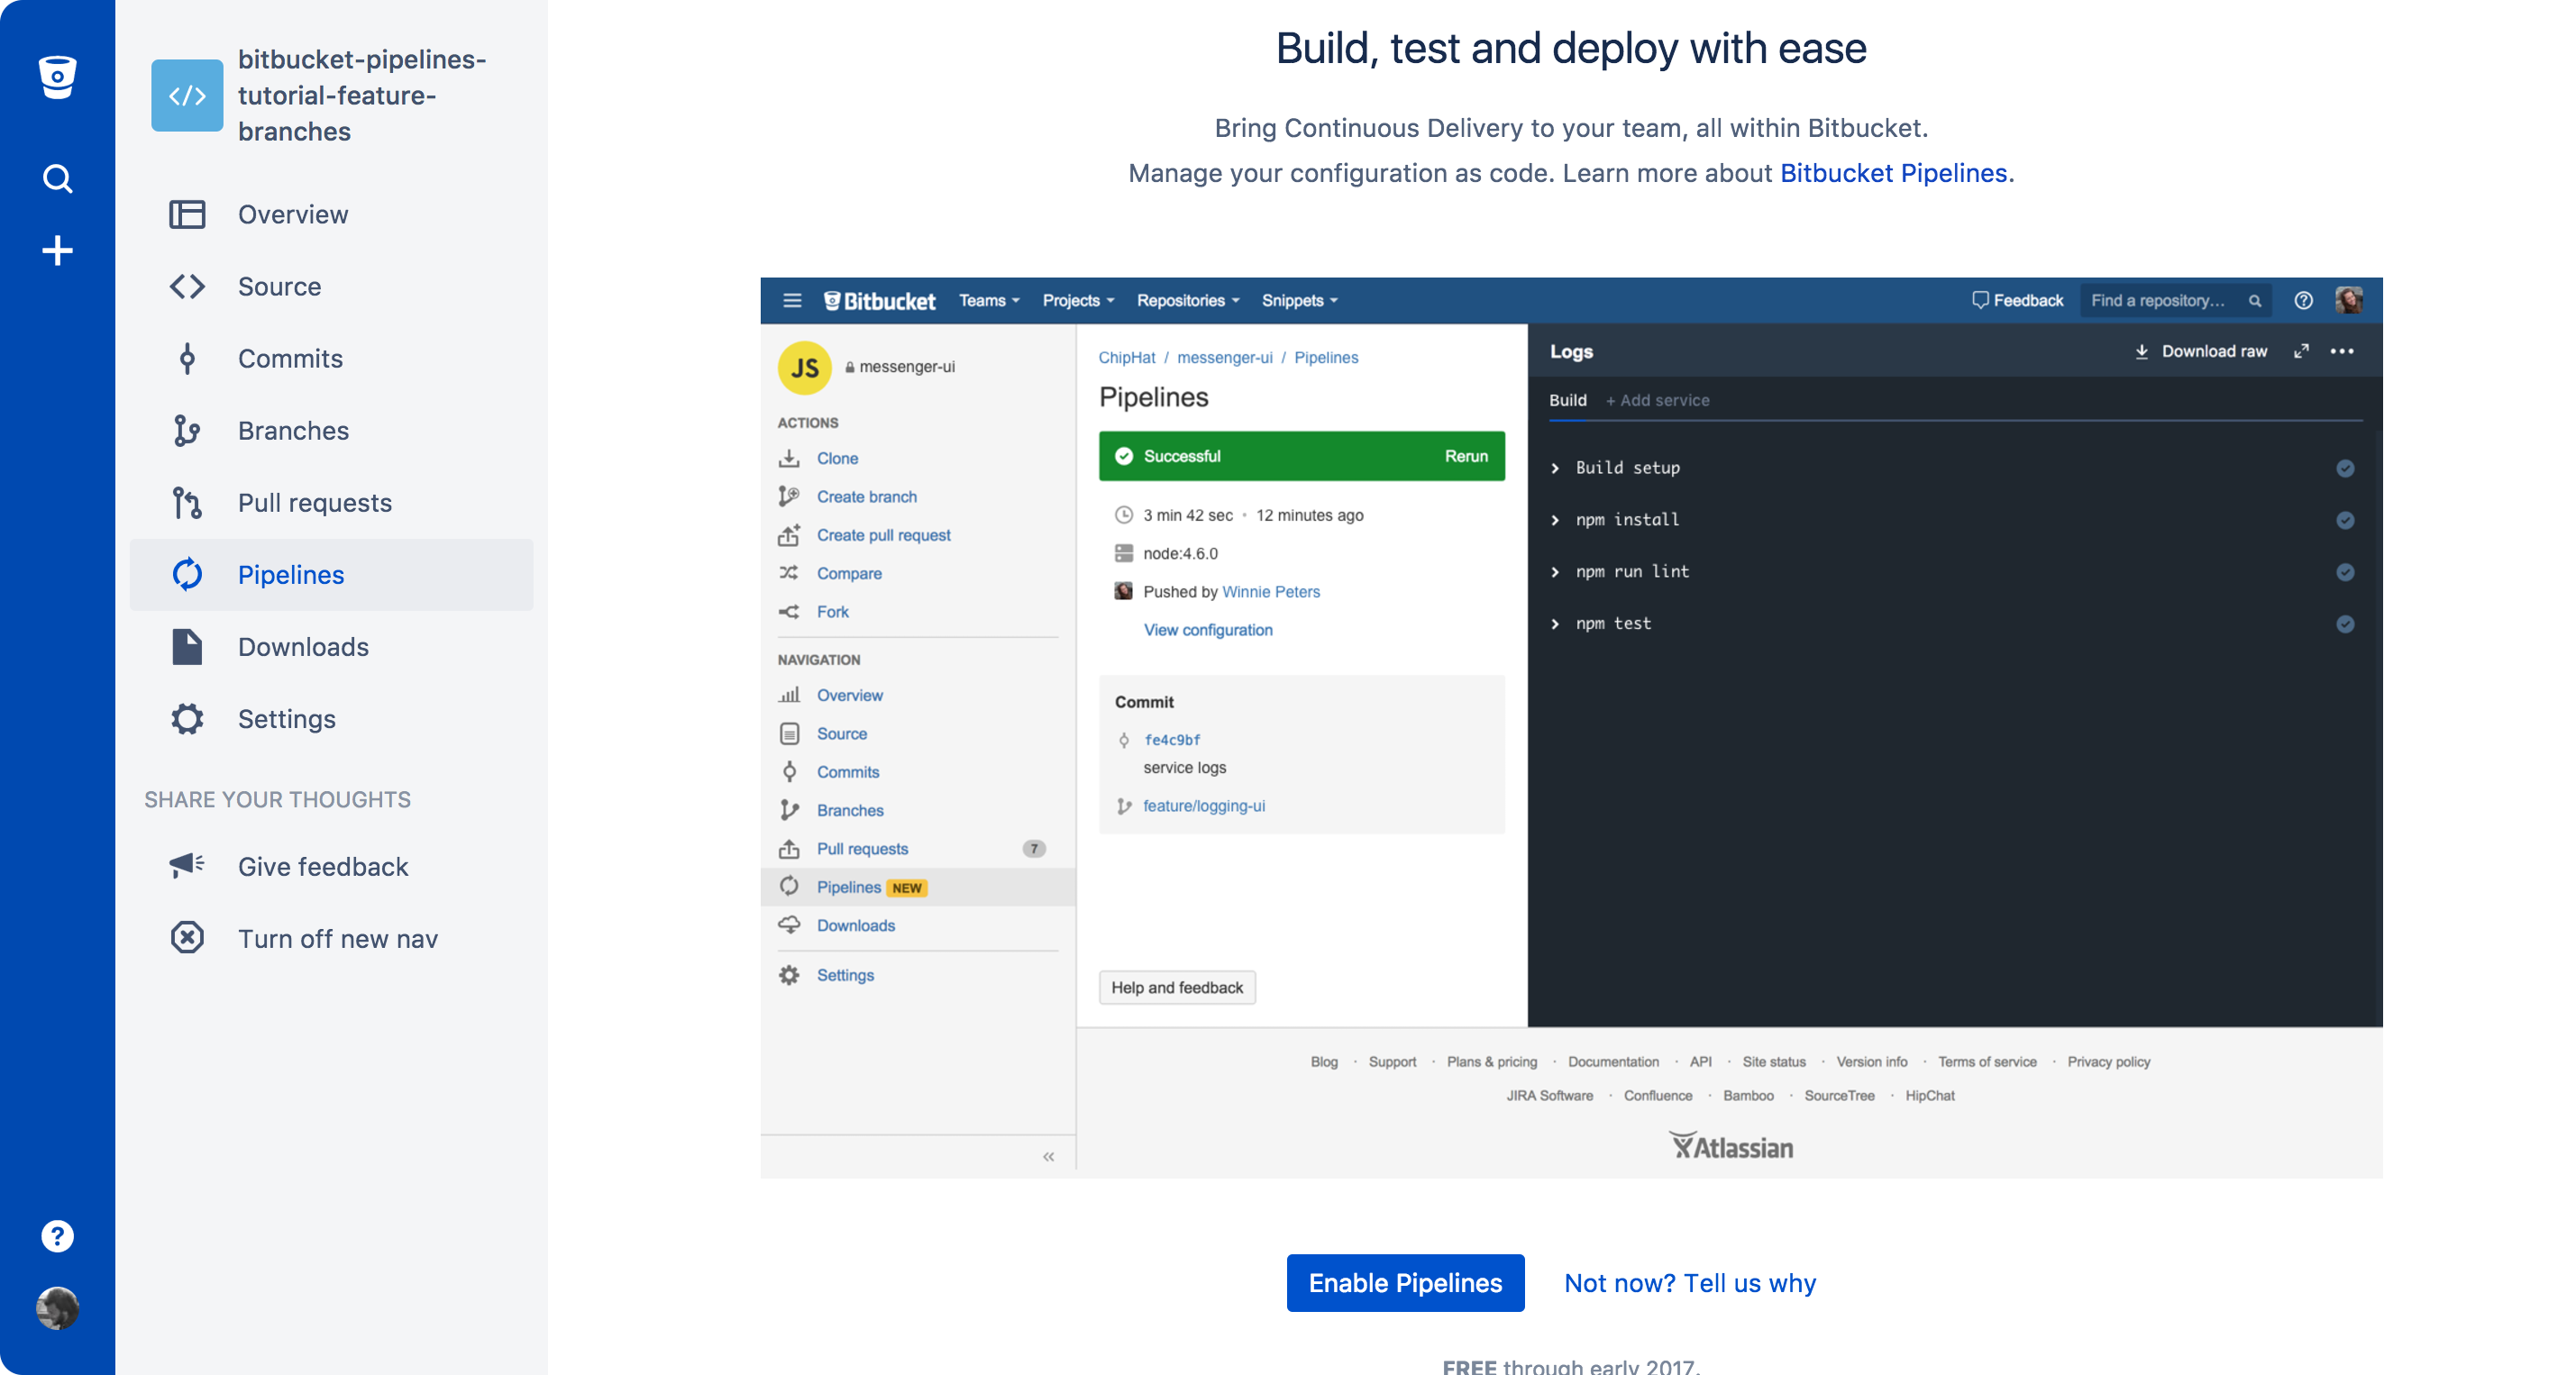 Bitbucket Pipelines is one click away for all your repositories